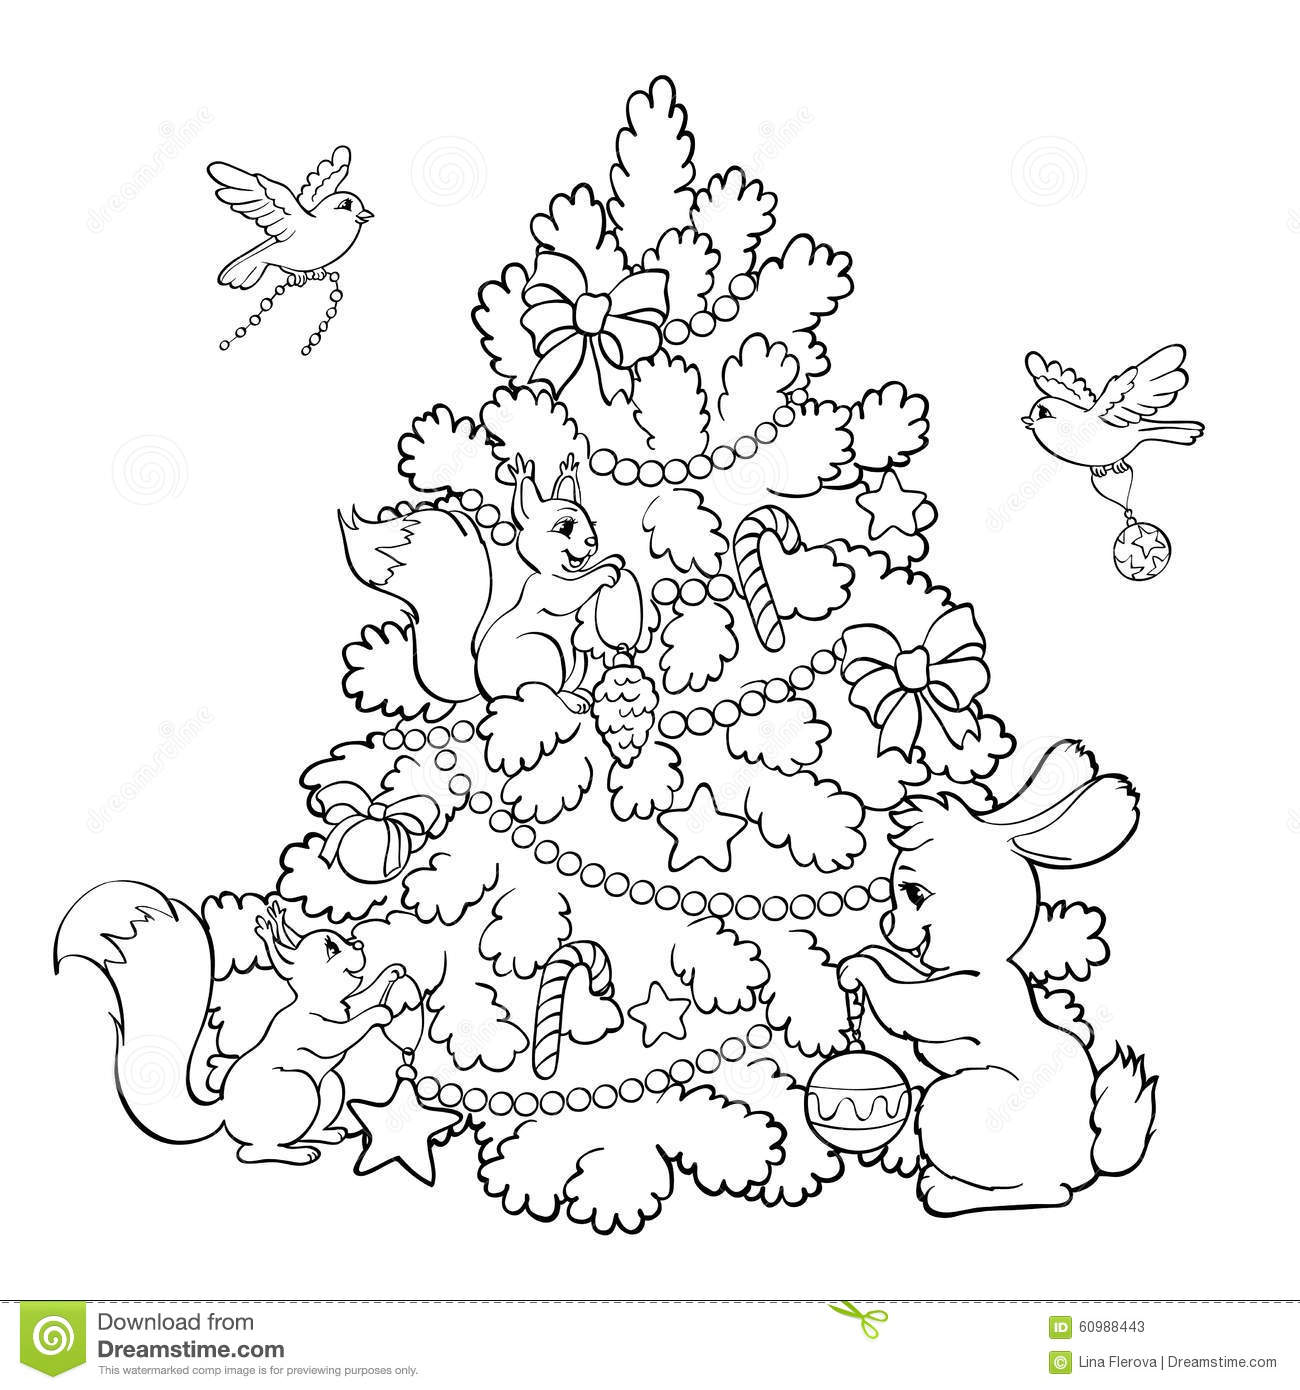 Royalty Free Vector Download Coloring Book Cartoon Animals Decorate The Christmas Tree